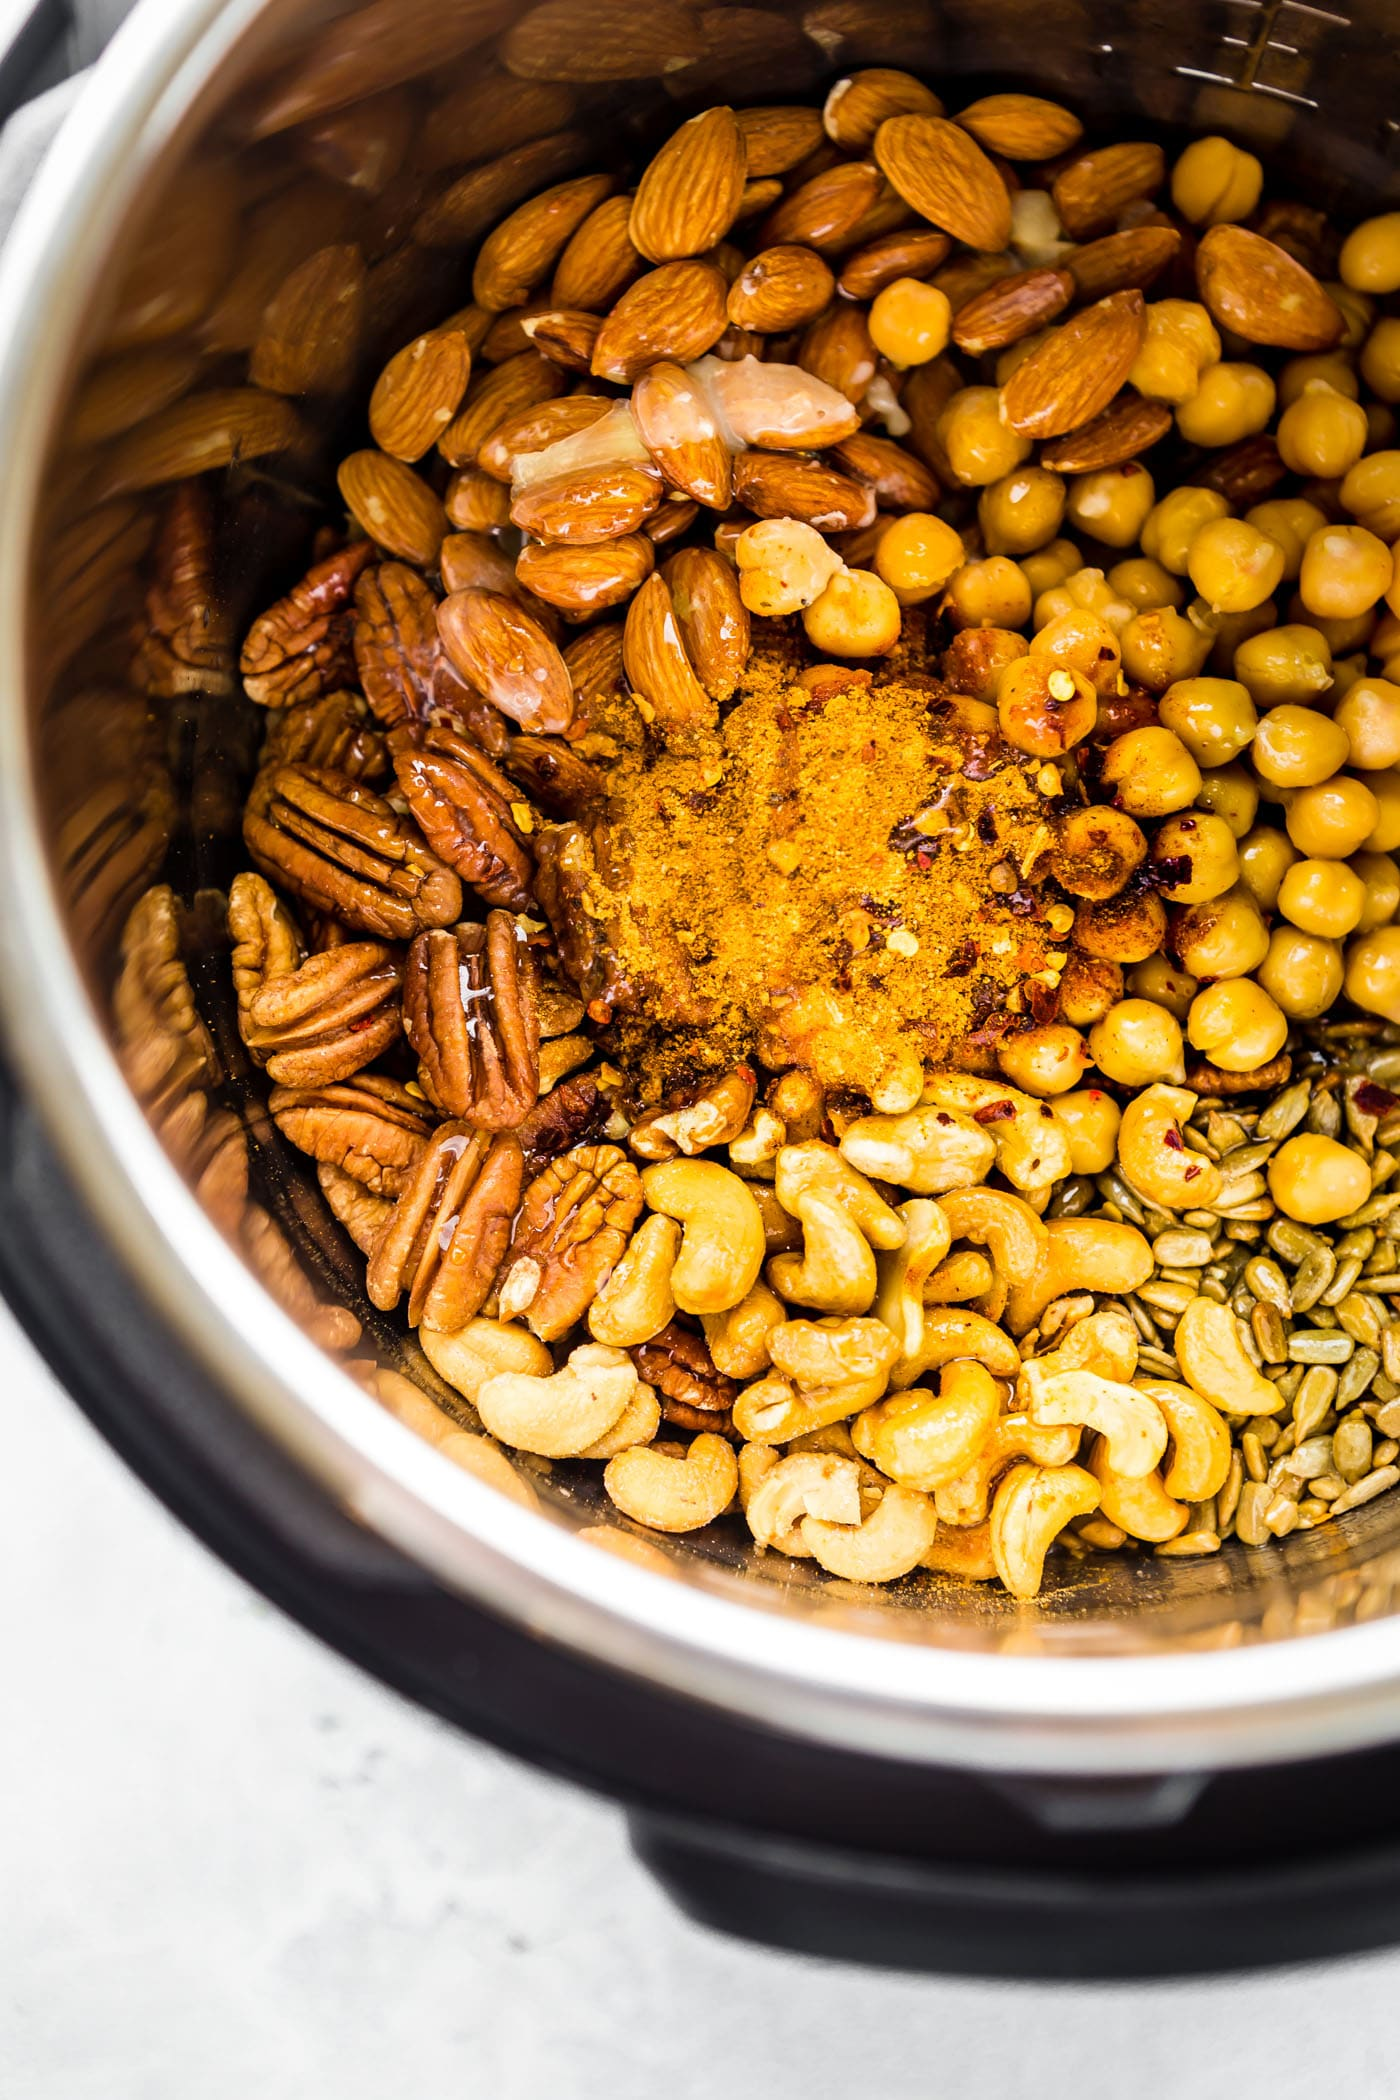 Spicy candied cajun trail mix made easy in the instant pot! What's not to love? This candied cajun trail mix is the perfect quick and healthy snack and total crowd pleaser. Cajun Spices, maple syrup, nuts, seeds, and chickpeas all cooked together then mixed with dried mango for a sweet touch. It's vegan friendly and naturally grain free!